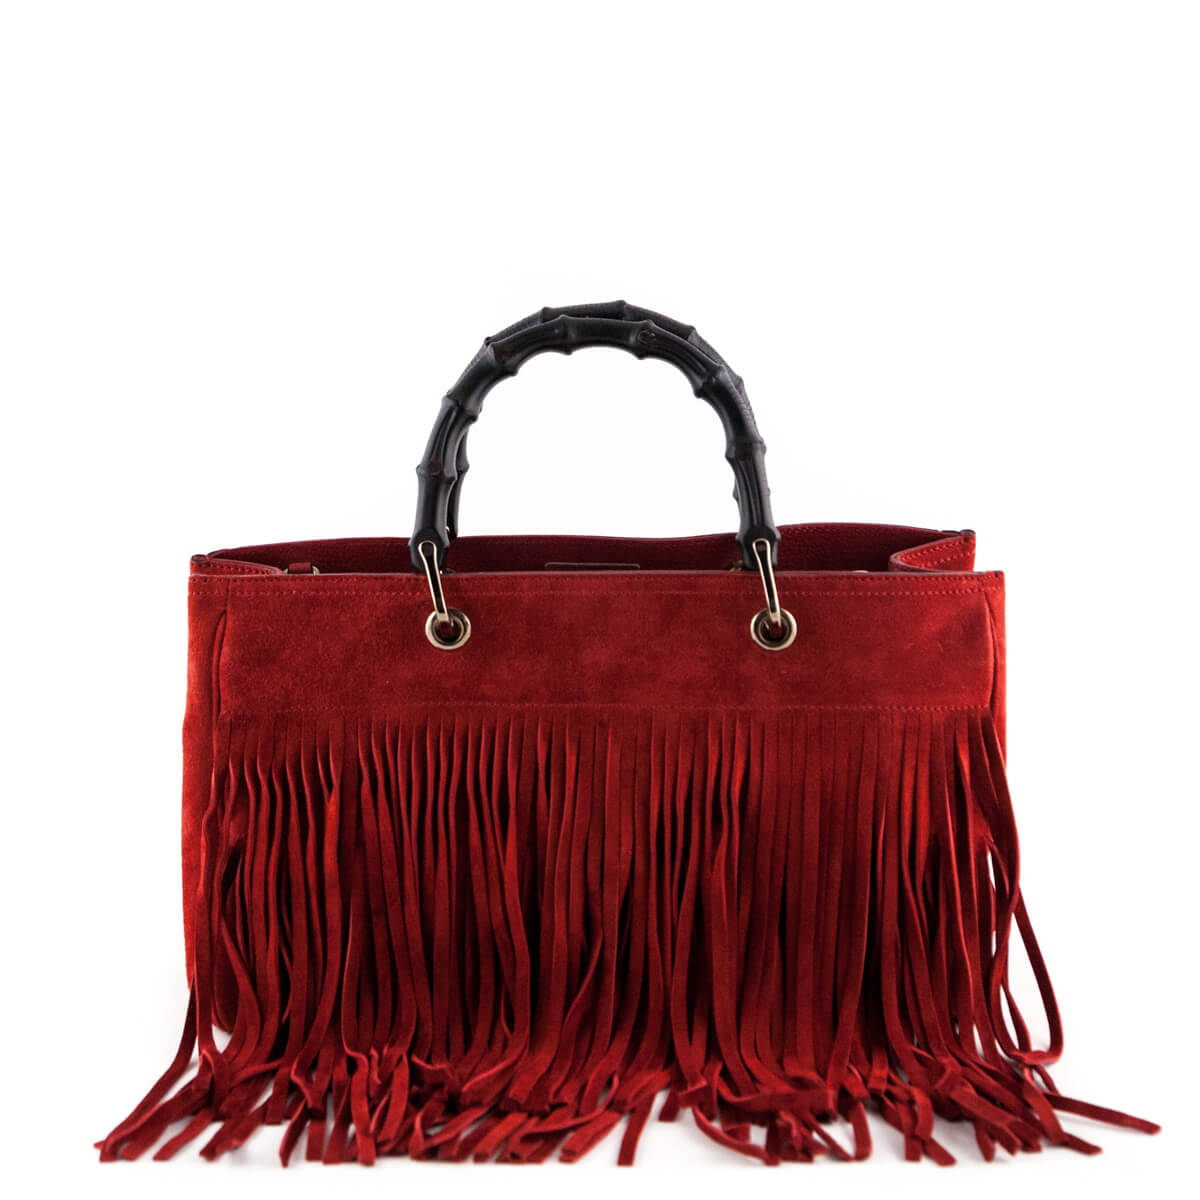 e263fecd89 Gucci Red Suede Bamboo Fringe Medium Shopper Tote